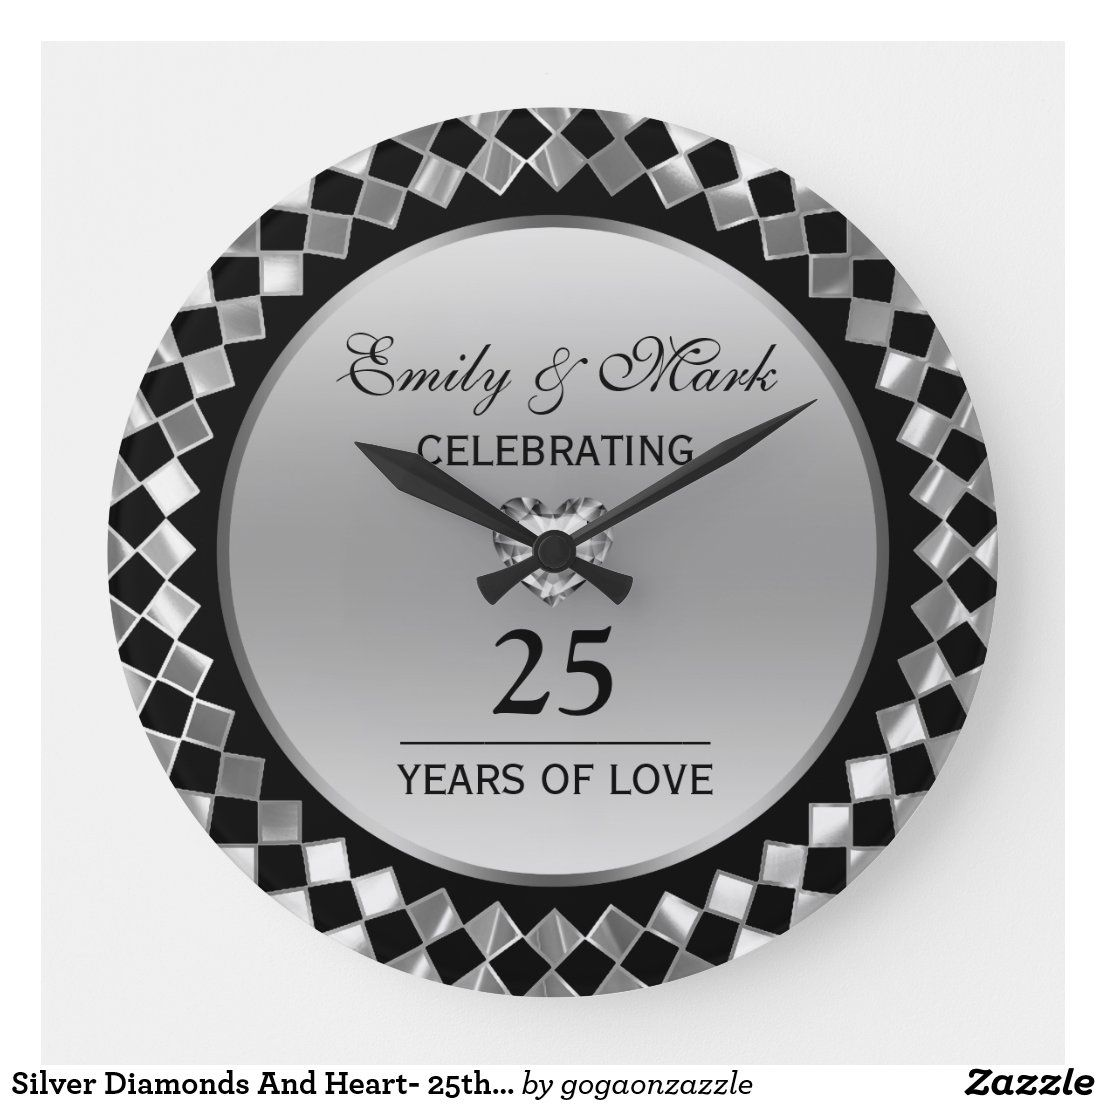 Silver Diamonds And Heart 25th Anniversary Large Clock Zazzle Com In 2020 Silver Diamonds Clock Wall Clock Gift